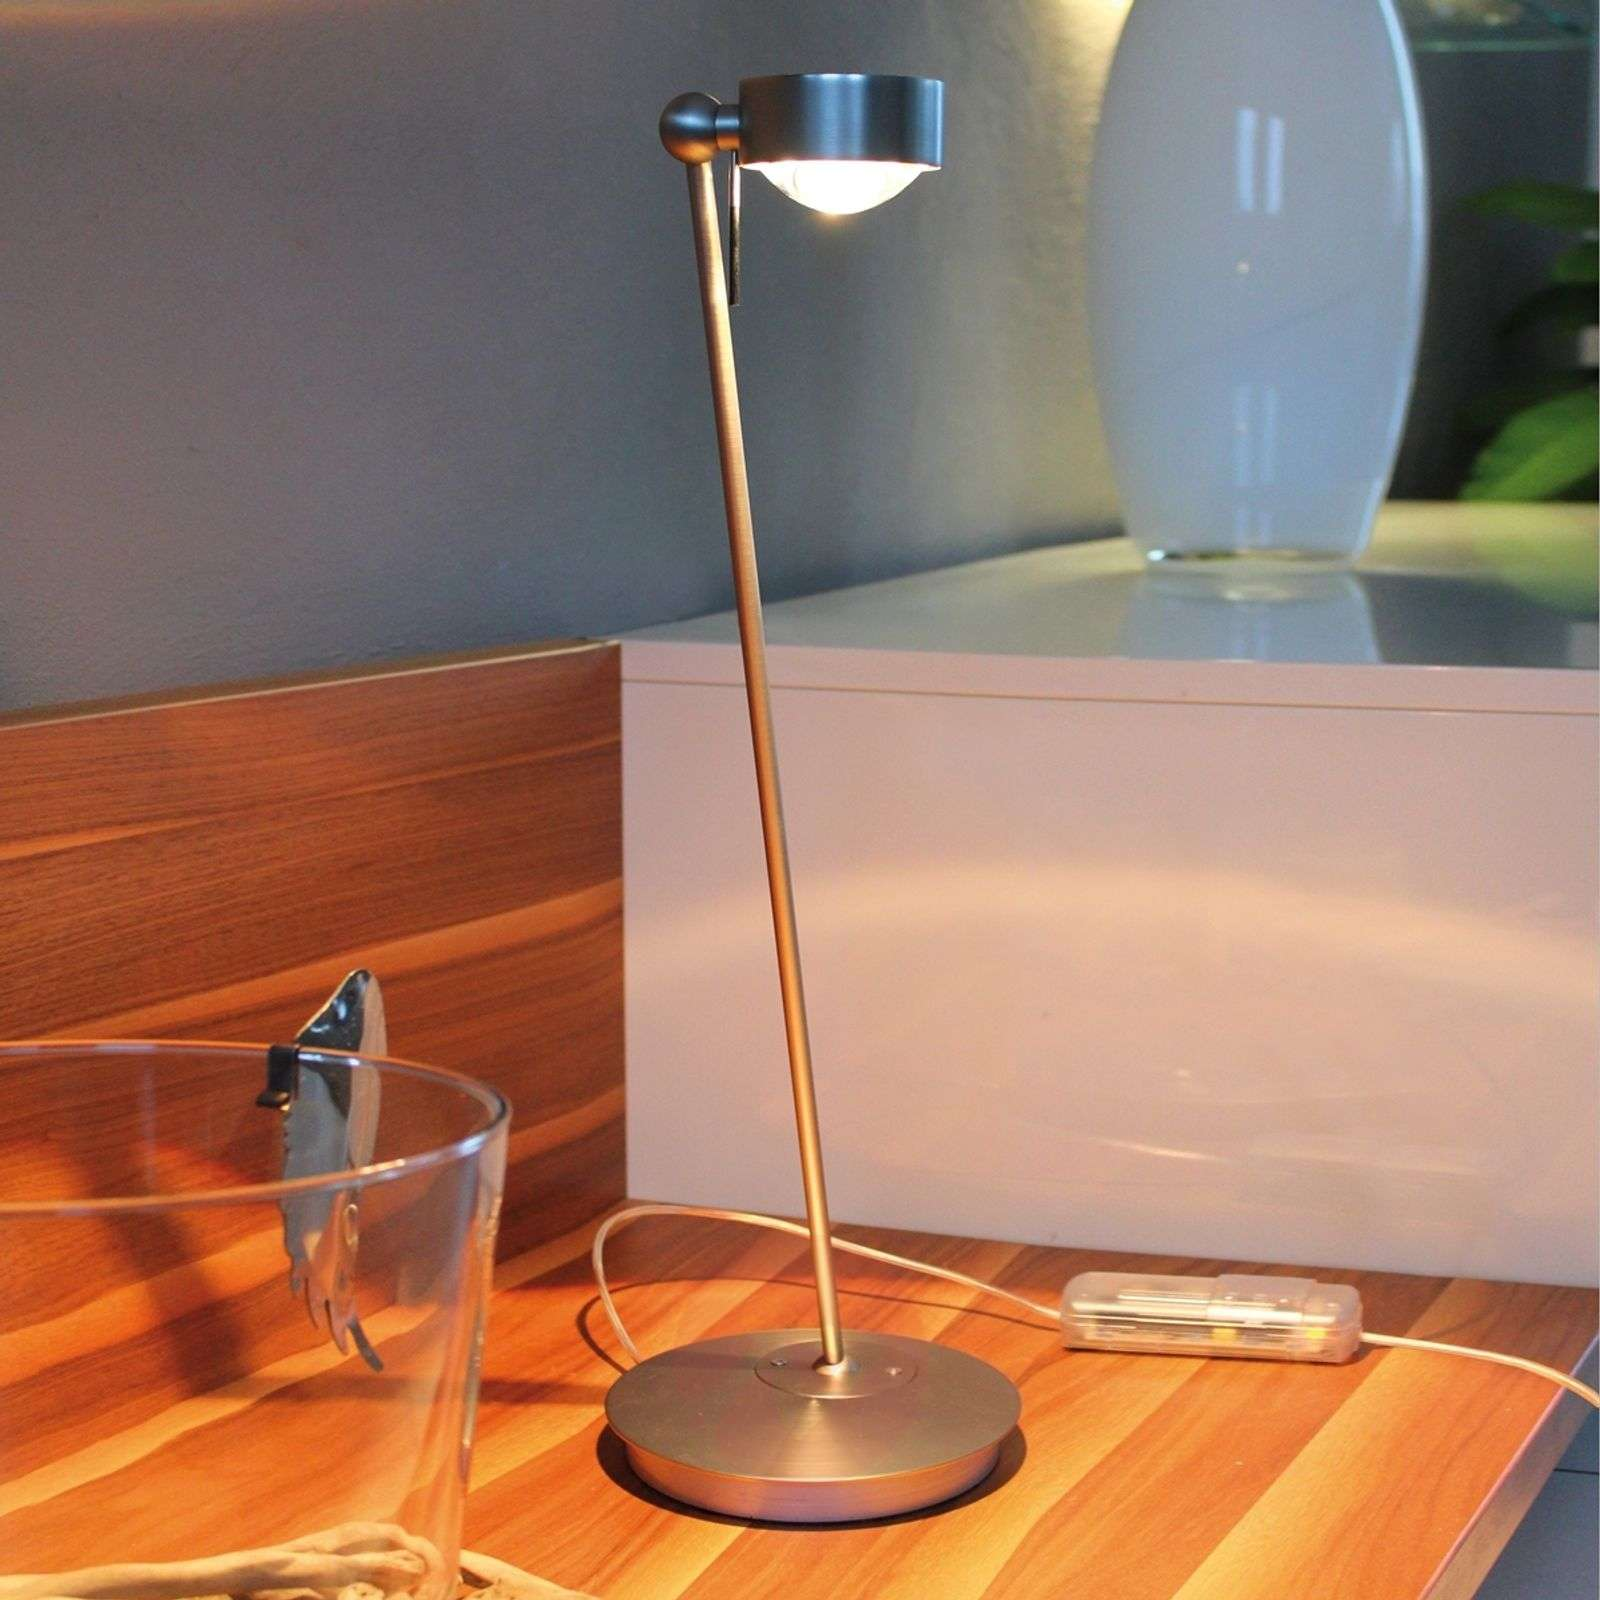 Dimmable table lamp PUK TABLE with dimmer switch-9020111X-01